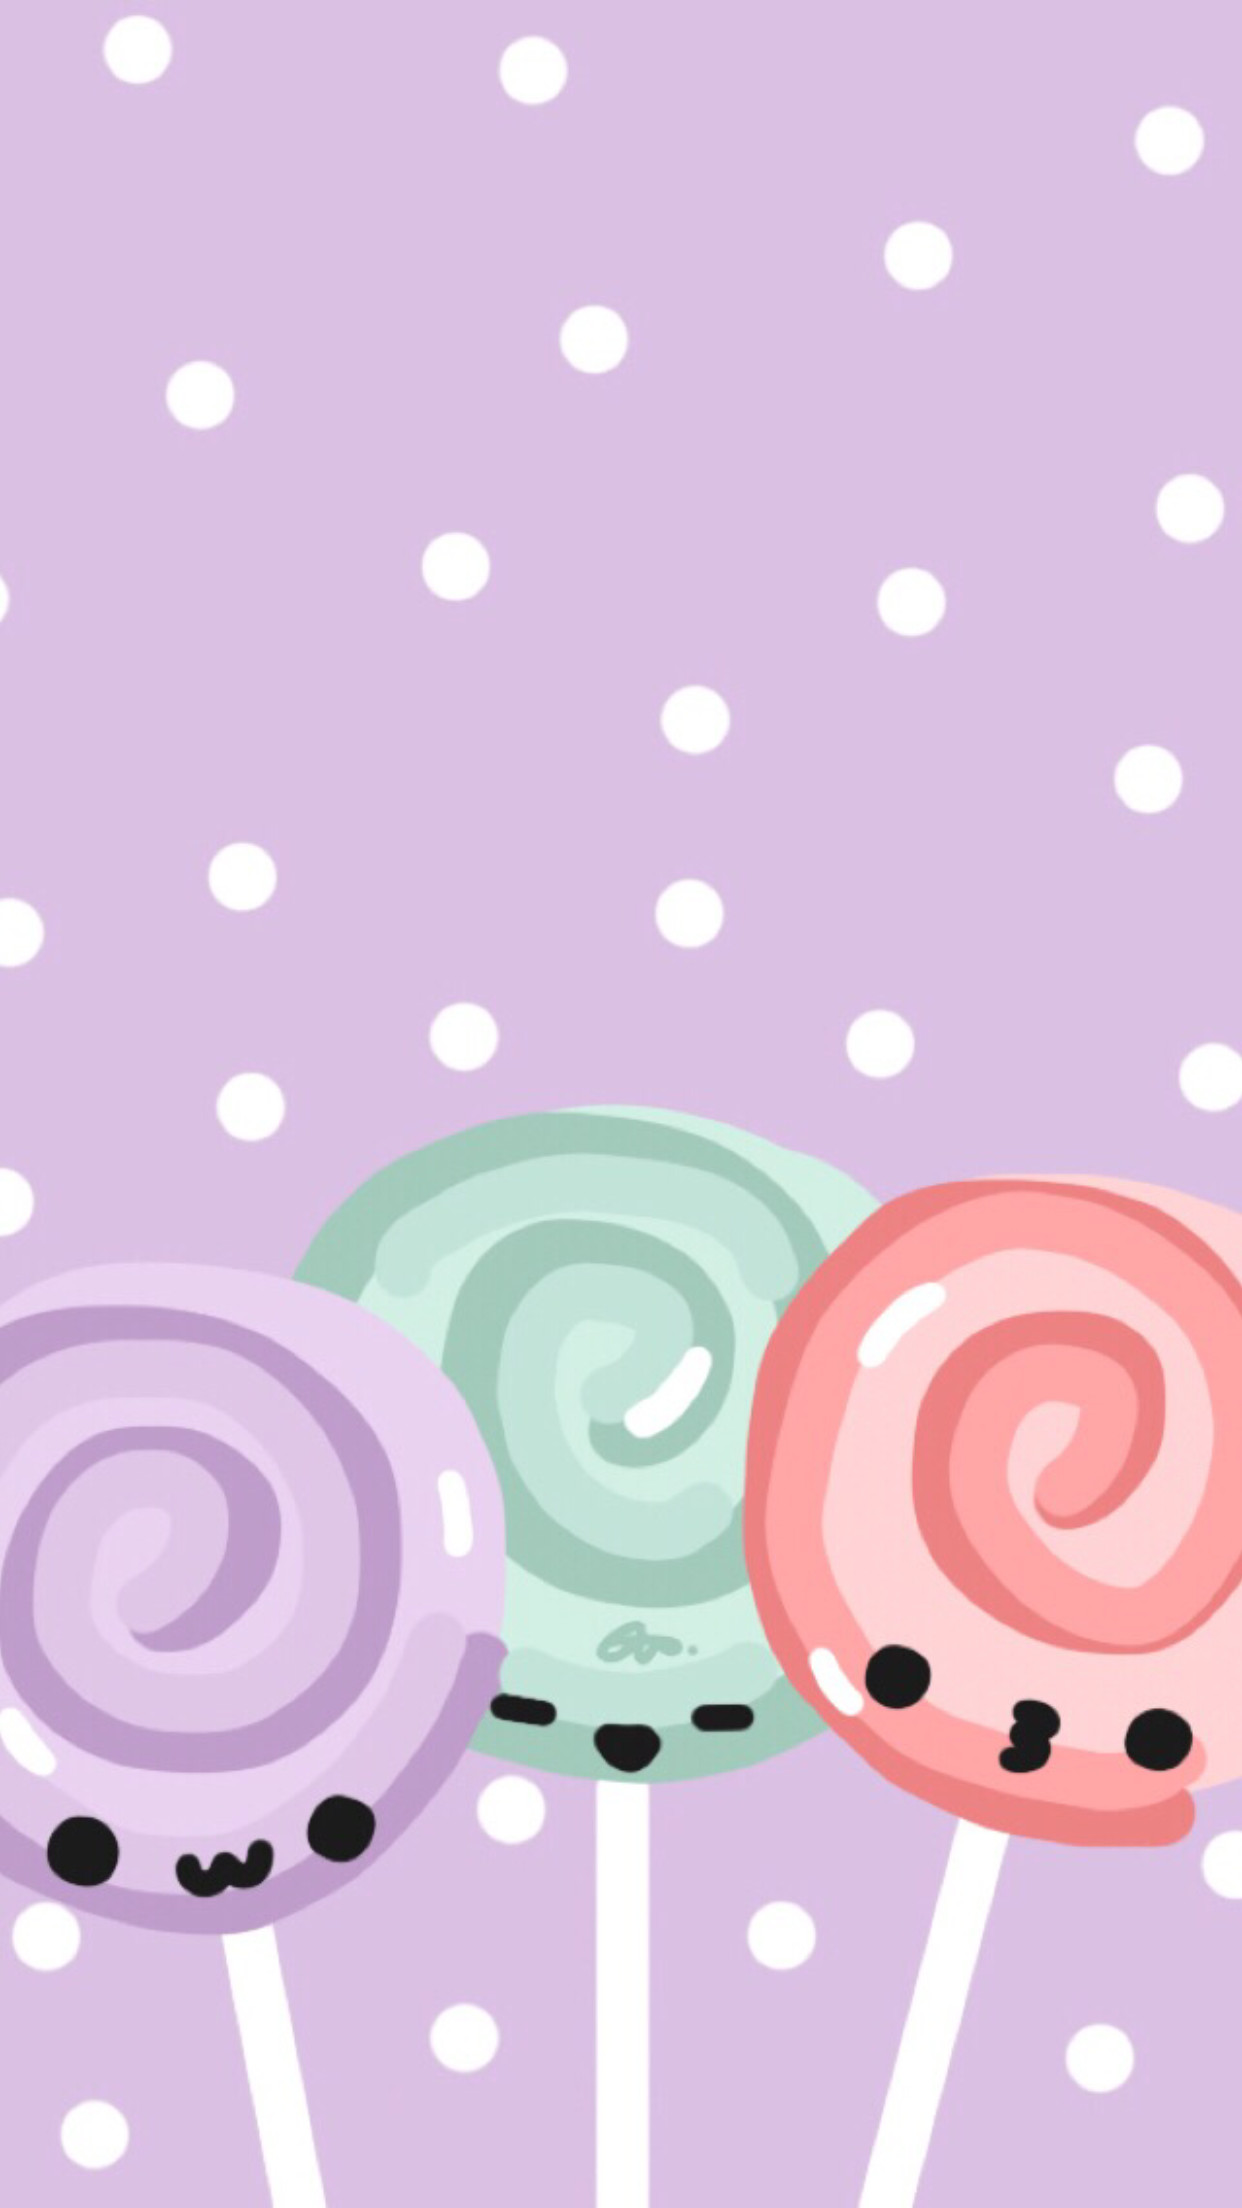 cute cartoon Love Wallpaper For Iphone : cute Wallpapers for Phone Backgrounds (71+ images)